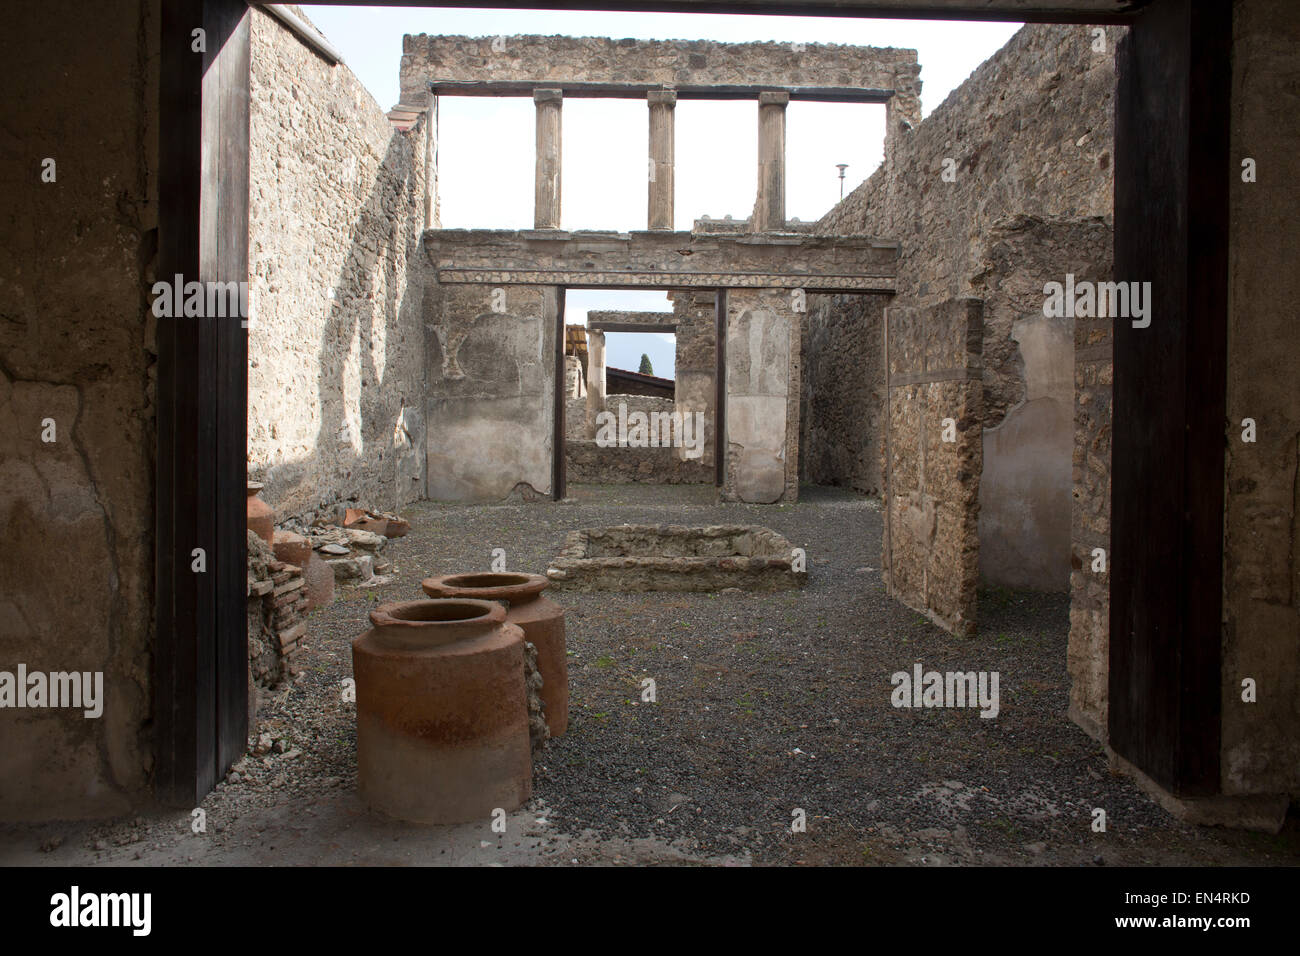 Almost 2,000 years ago, the city of pompeii was destroyed by an eruption of Mount Vesuvius. 20,000 residents of - Stock Image